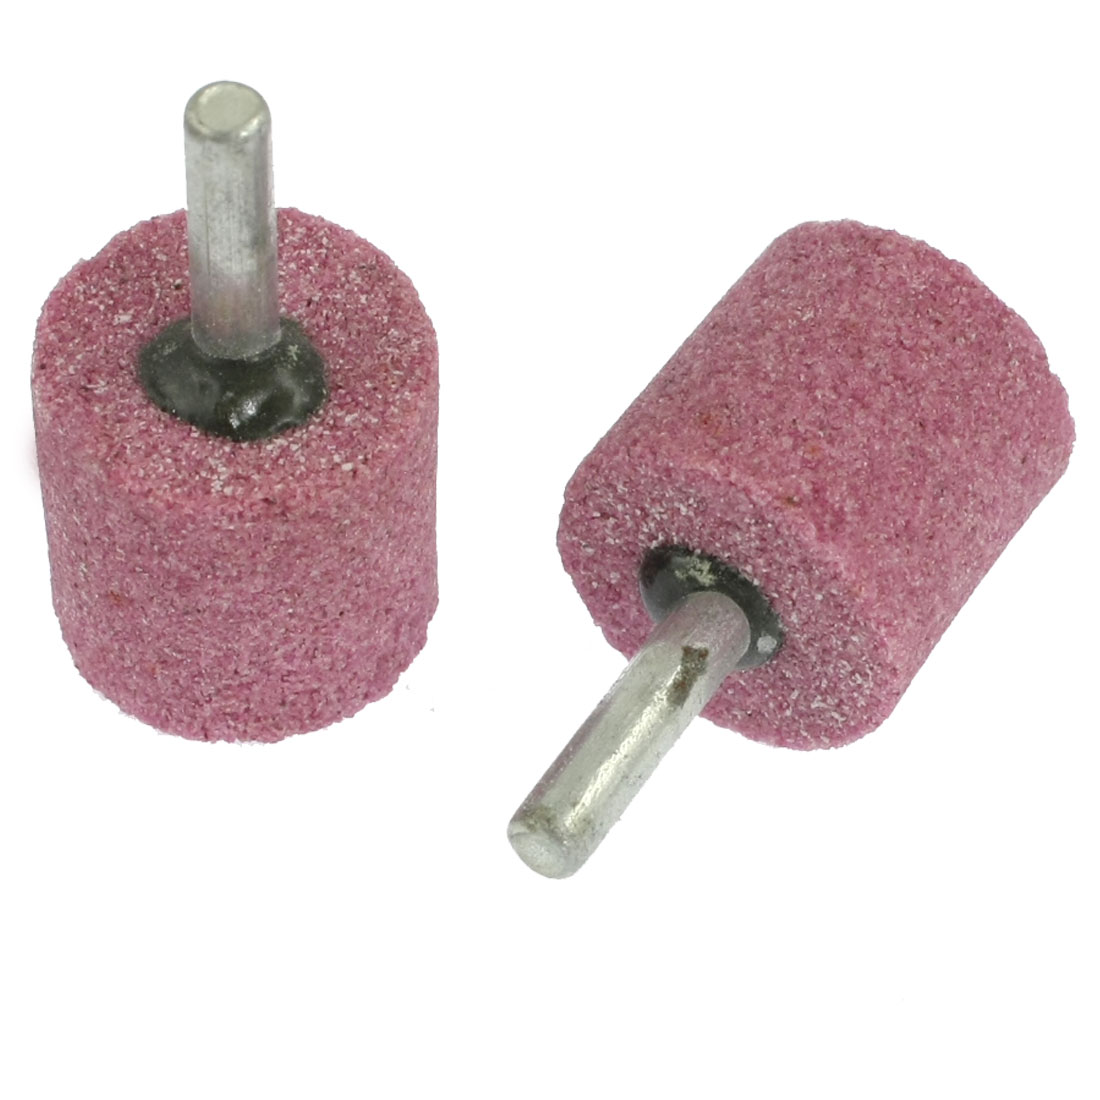 27mm Head Ceramic Stone Abrasive Grinding Mounted Points 2 Pcs